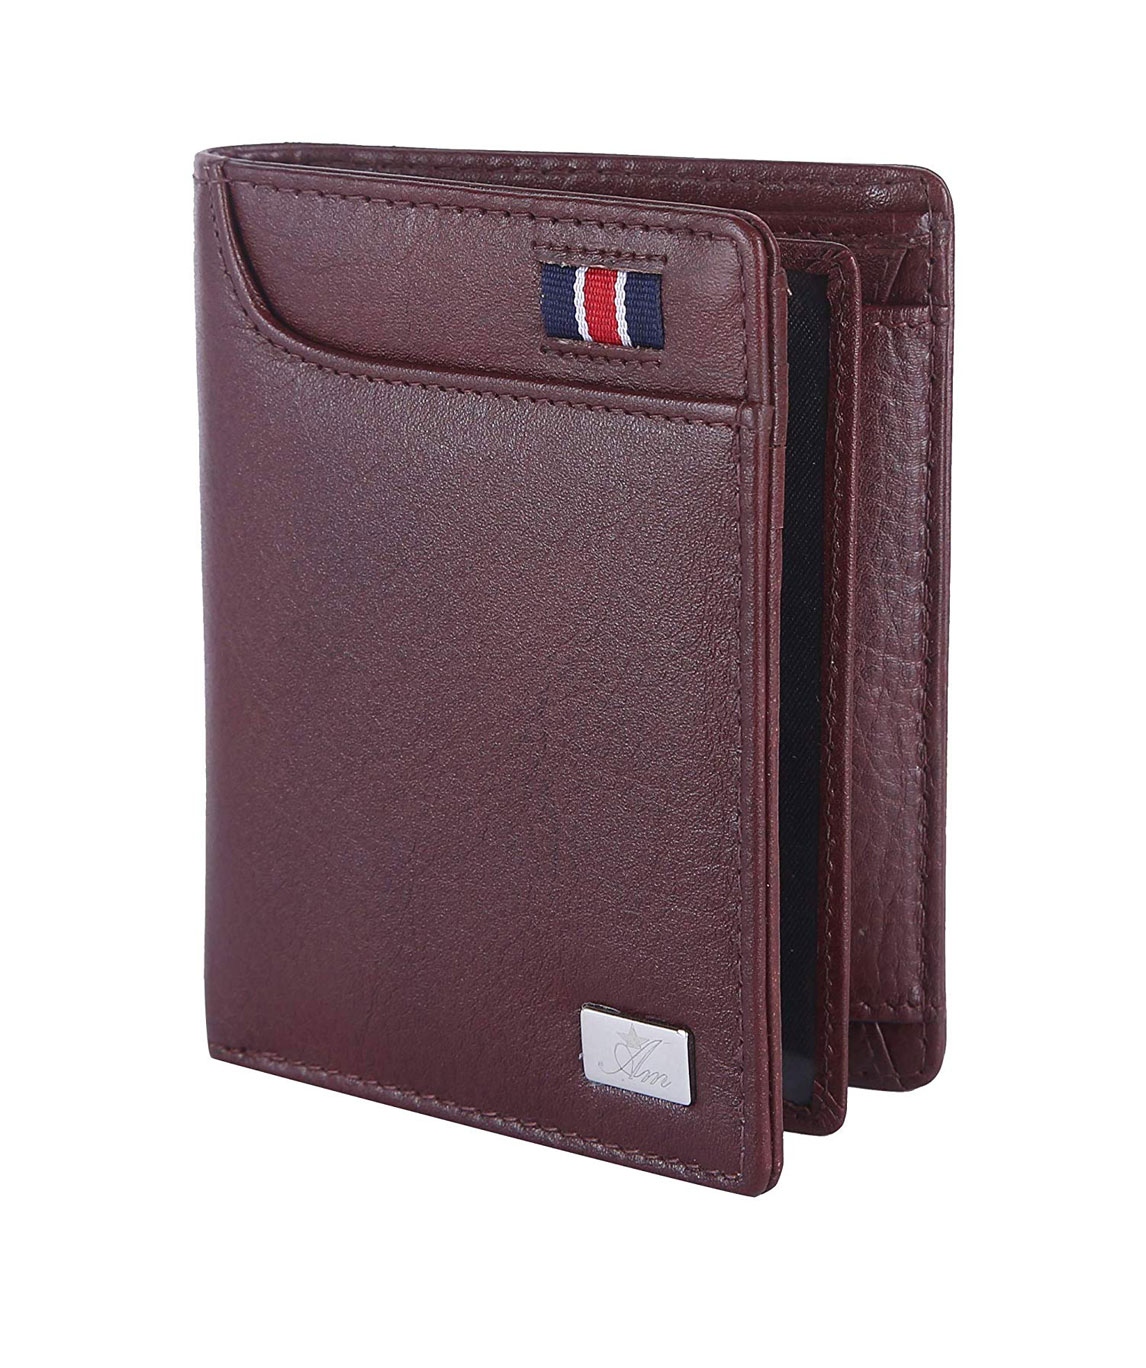 AM LEATHER Genuine Brown Leather Wallet Good Premium Quality Hand Crafted Purse Wallet for Men